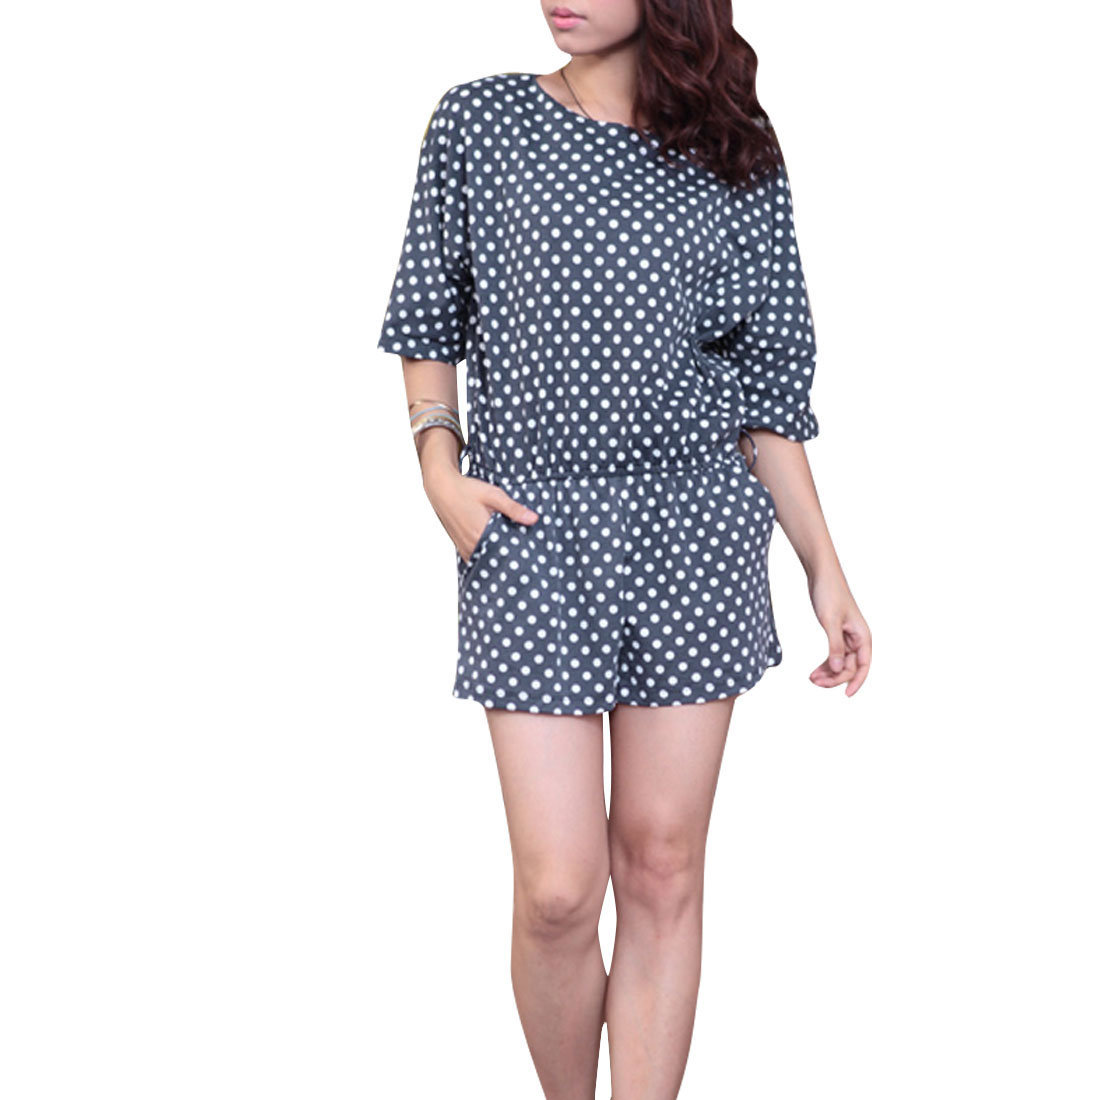 Ladies Chic Short Dolman Sleeve Dots Pattern Dark Blue White Short Rompers S